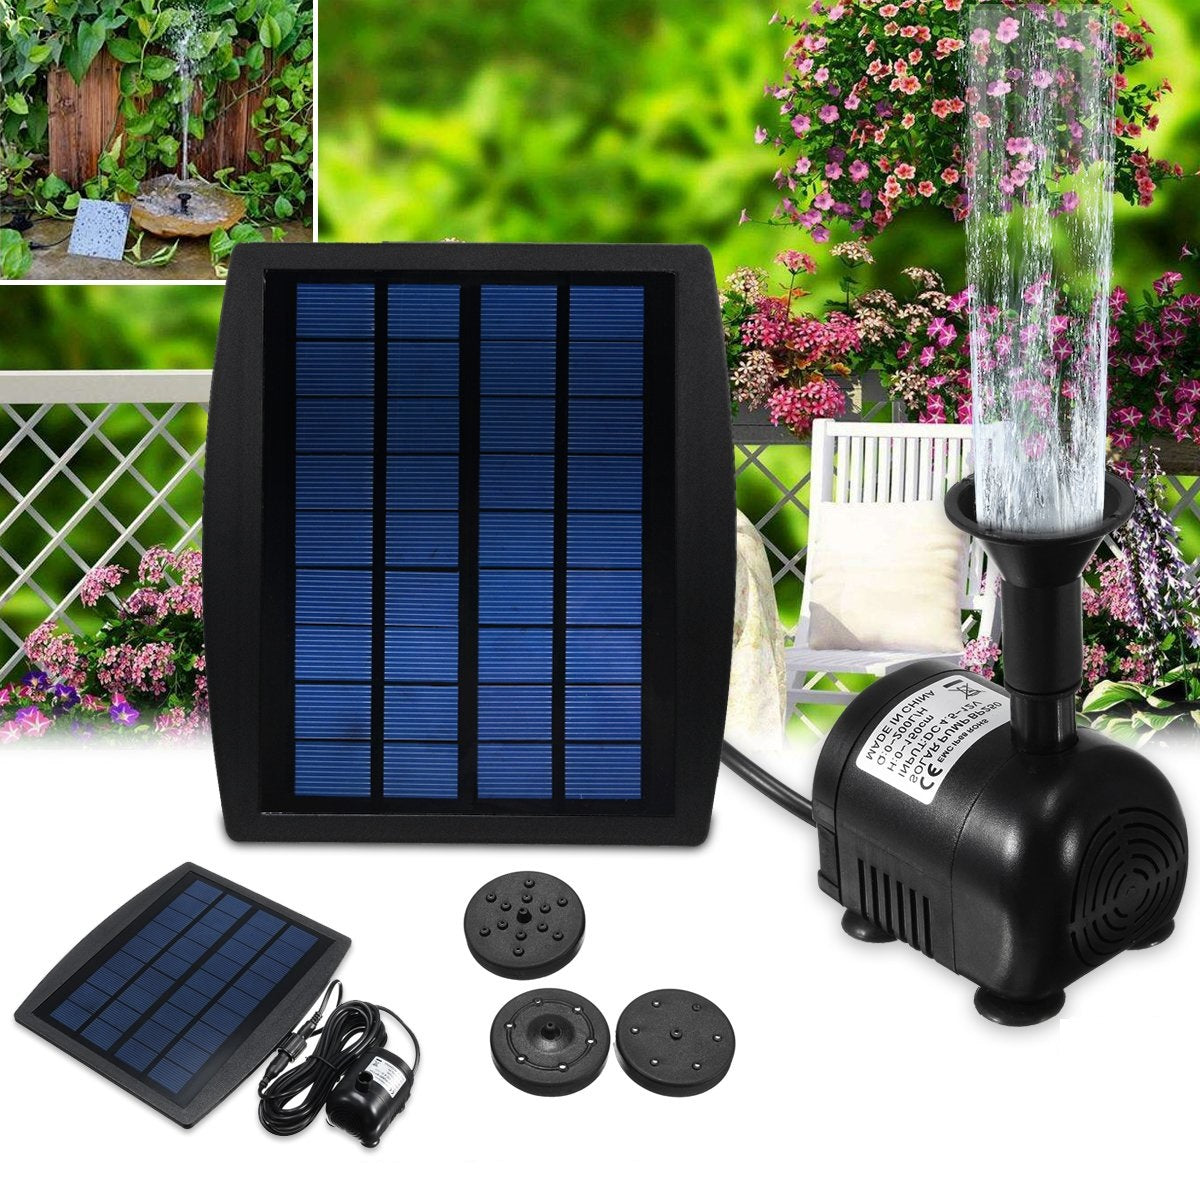 2.5W Solar Panel Floating Fountain Solar Water Pump Kit Waterfall Outdoor Water Bird Bath